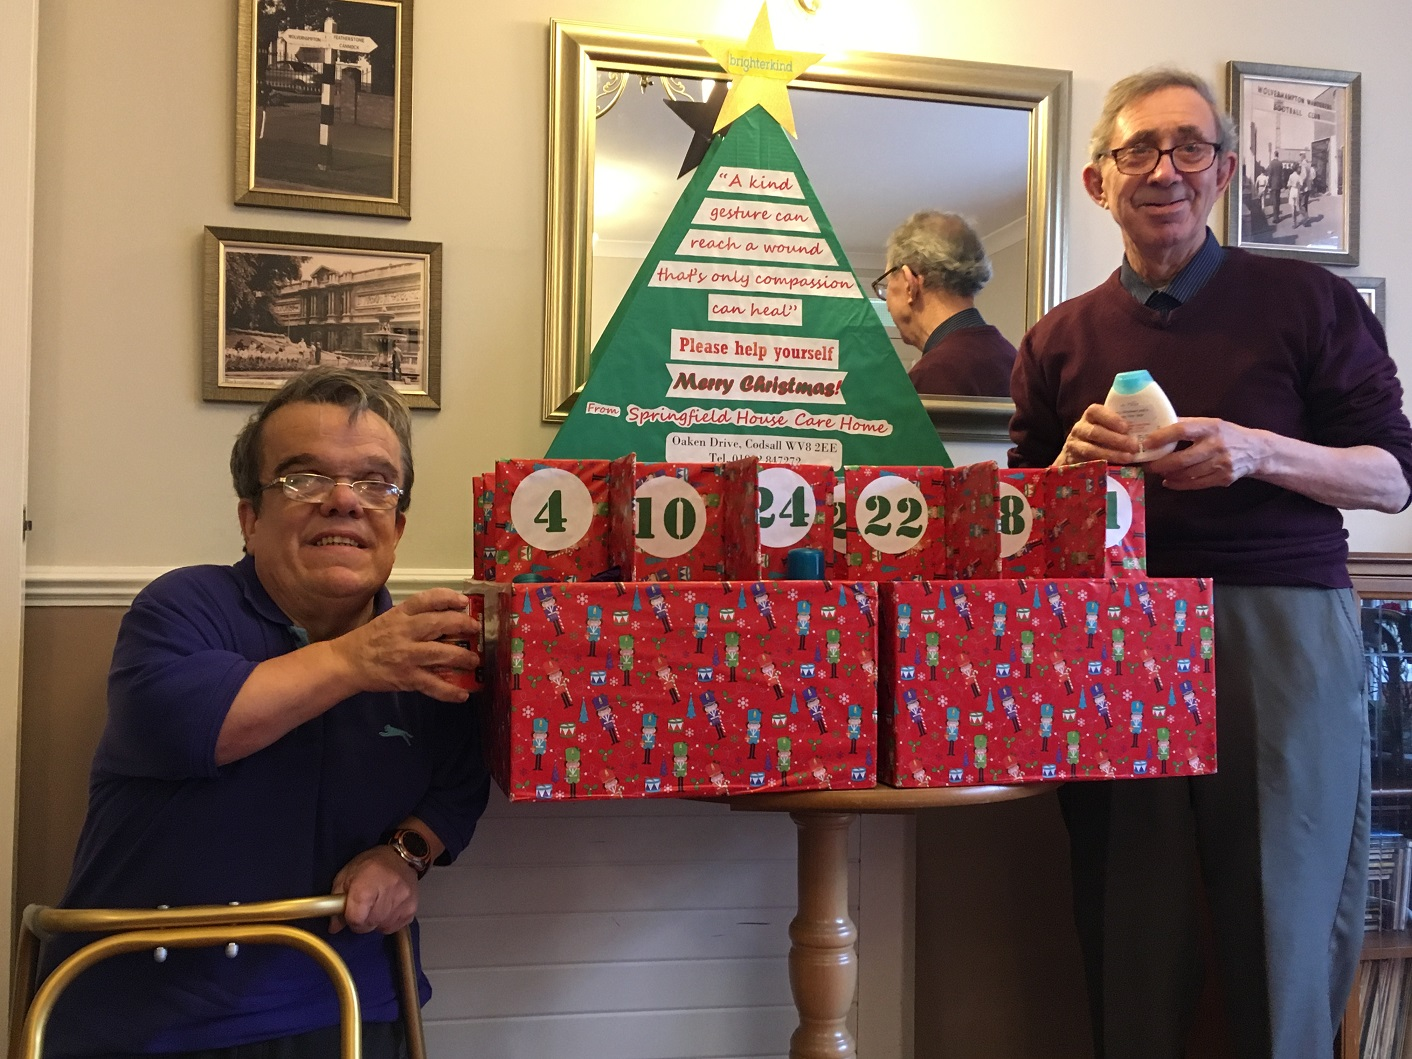 Residents Robert Day and Peter Bristow putting the final touches to our Advent calendar for the homeless